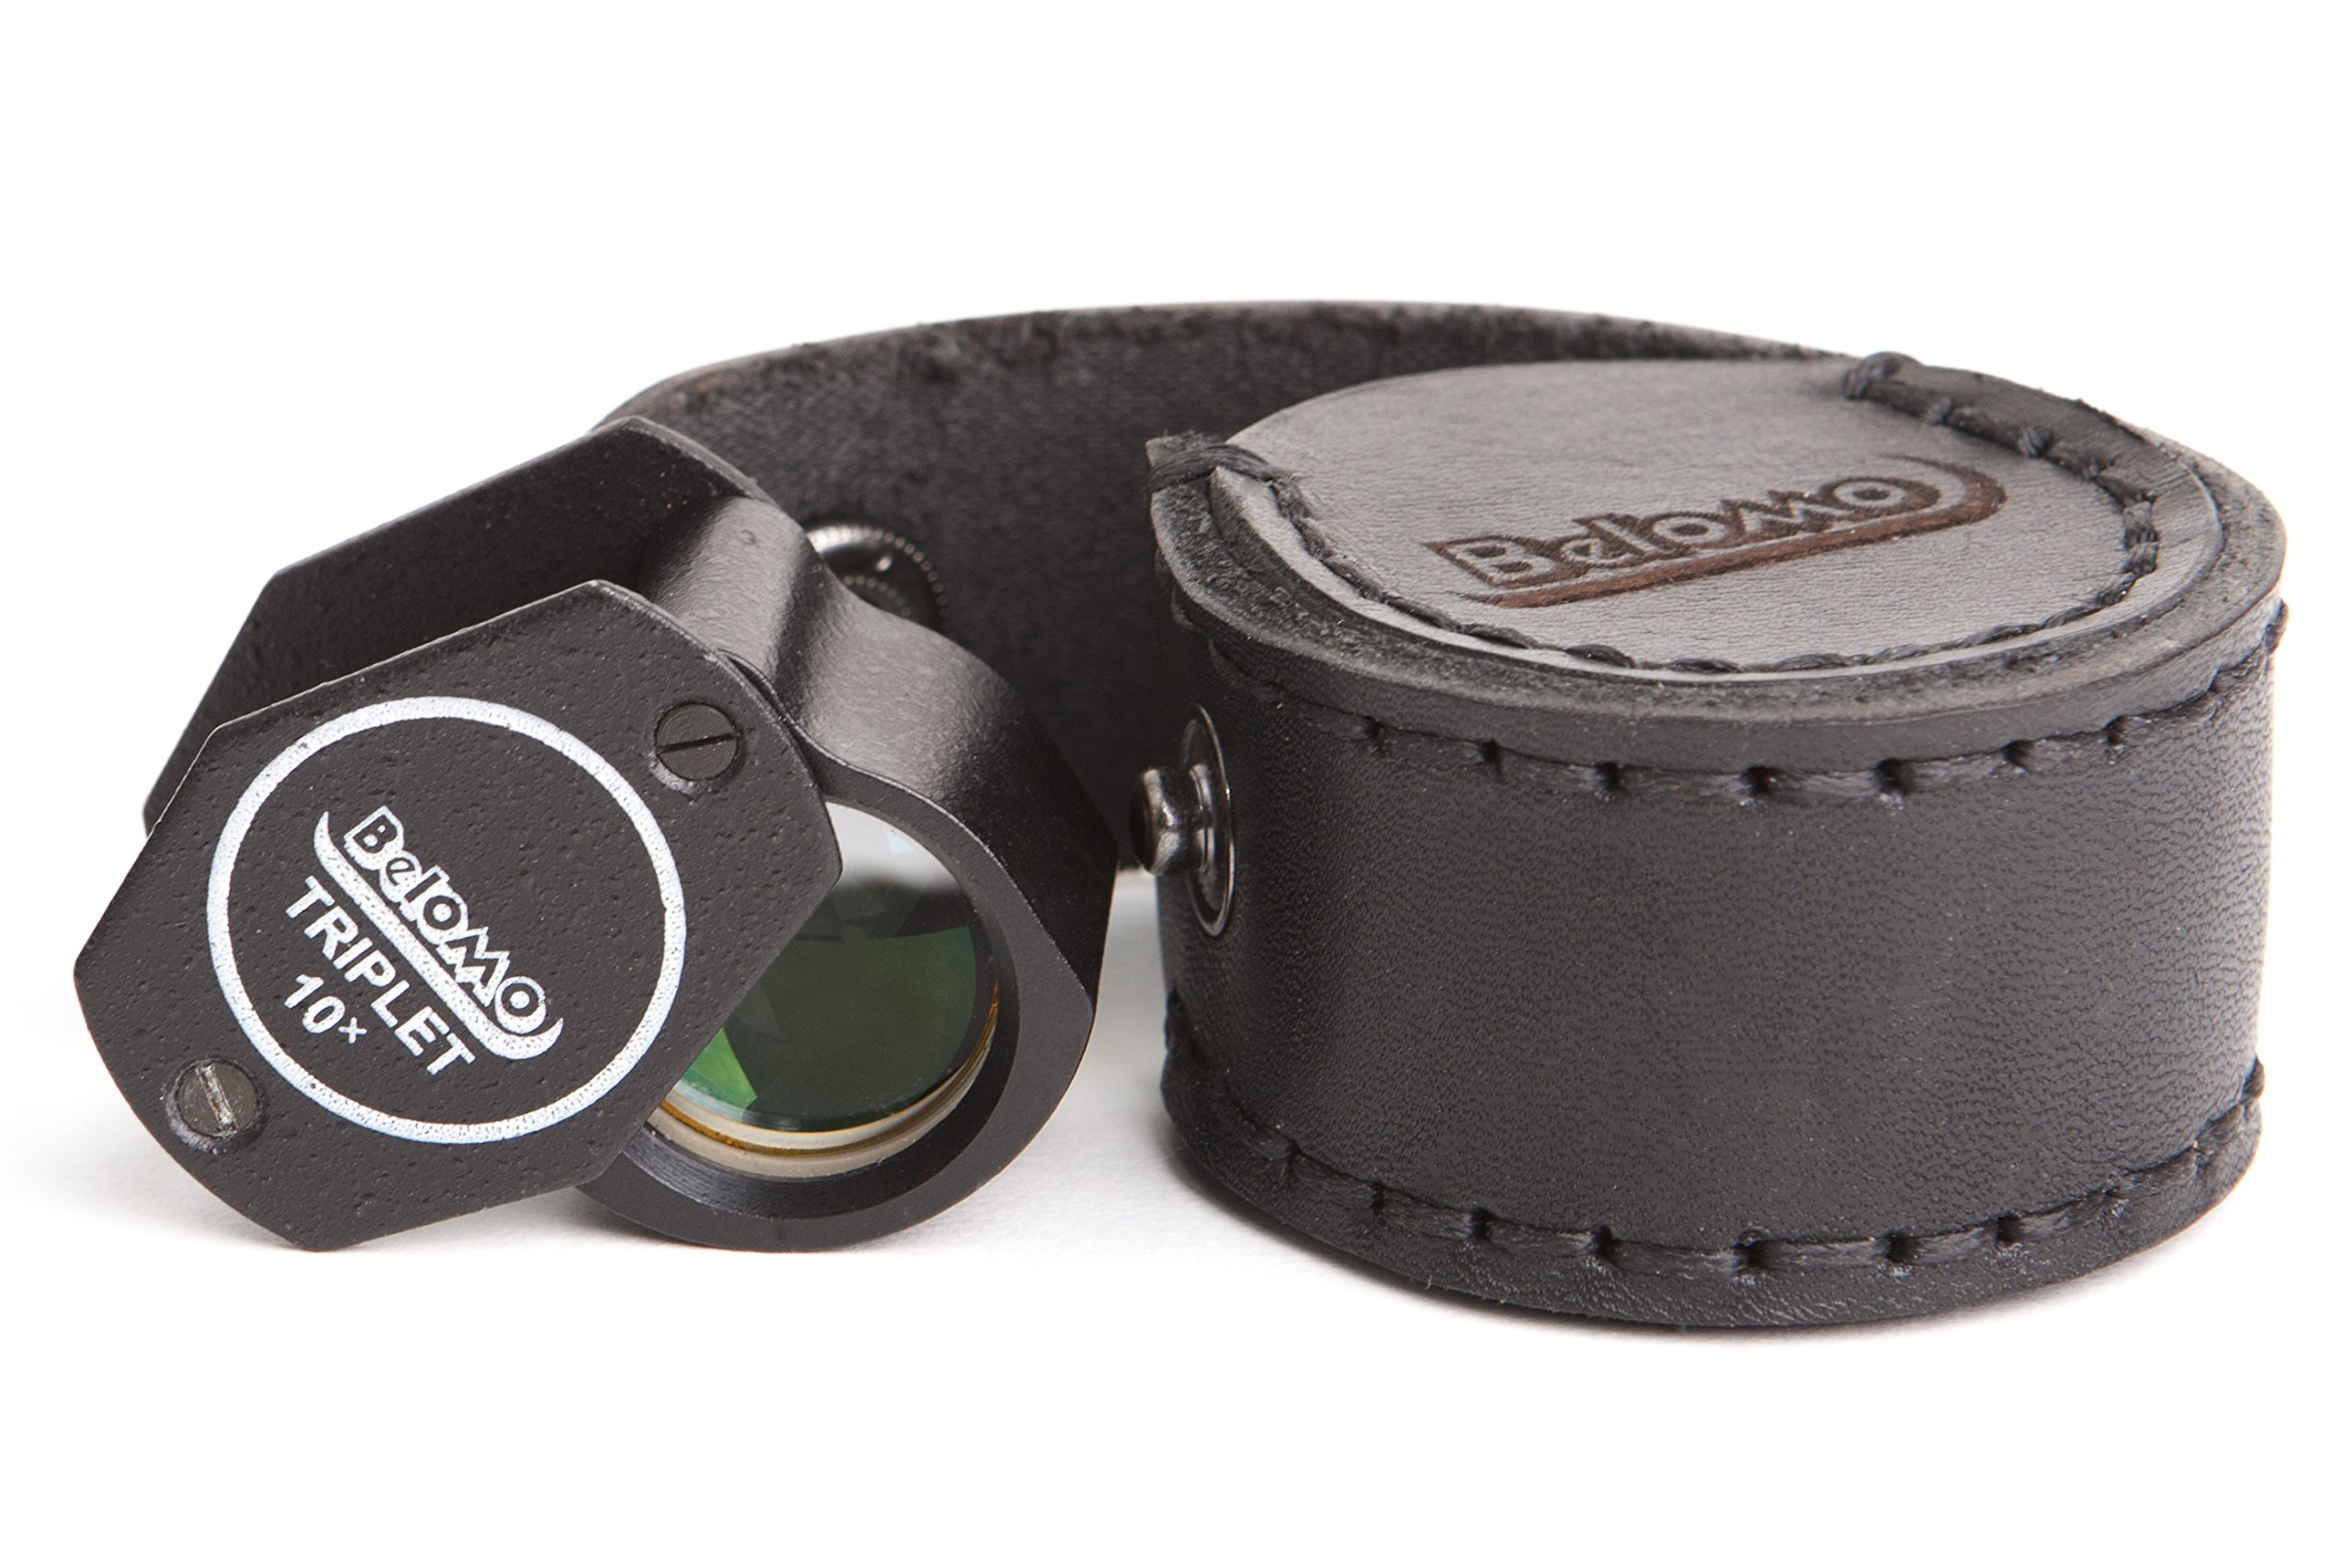 BelOMO 10x Triplet Loupe Magnifier with LEATHER CASE. 21mm (.85'') Folding Magnifier by BelOMO